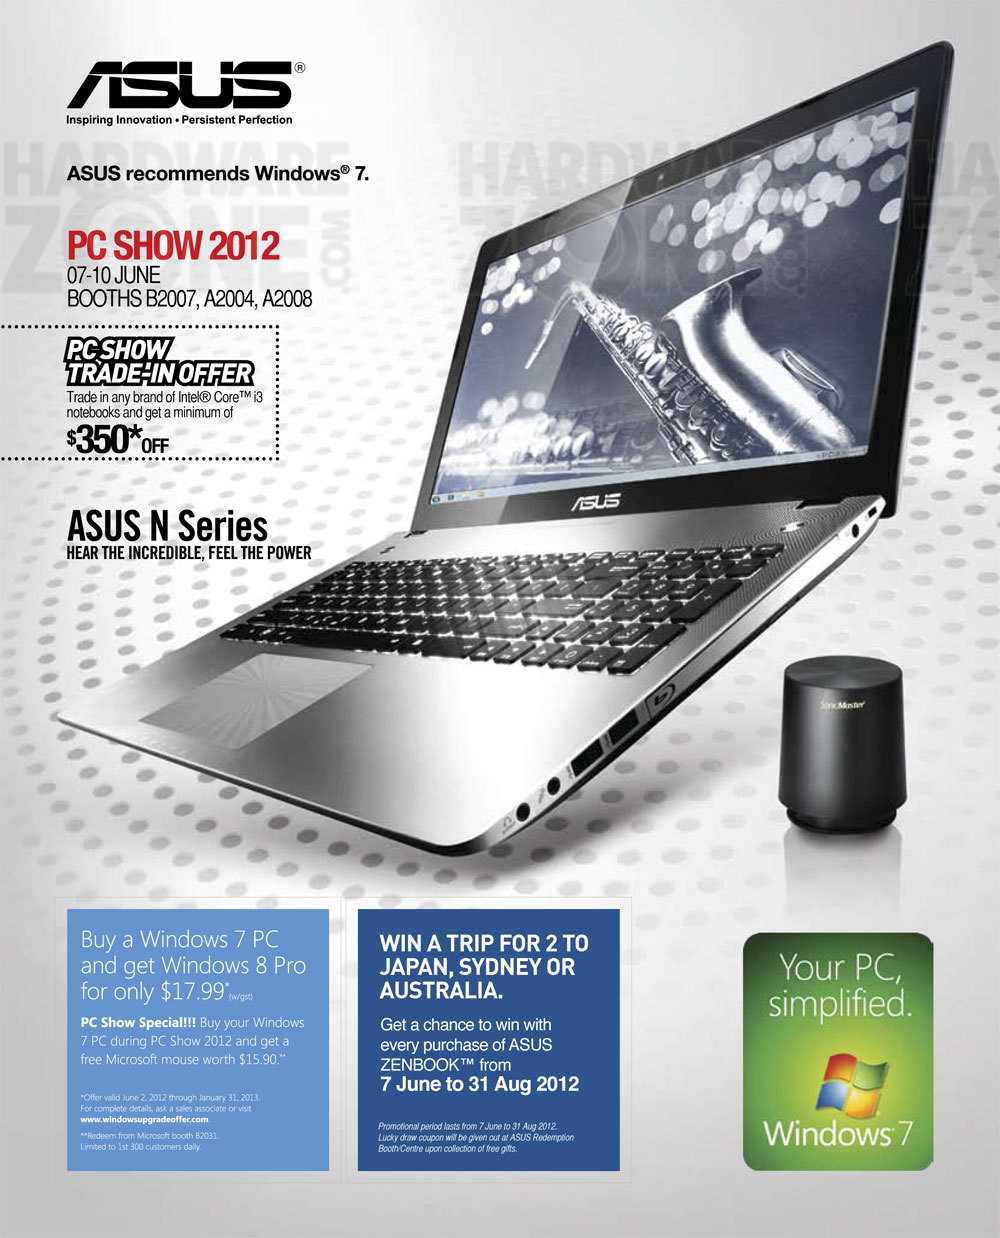 ASUS Notebooks - Page 01